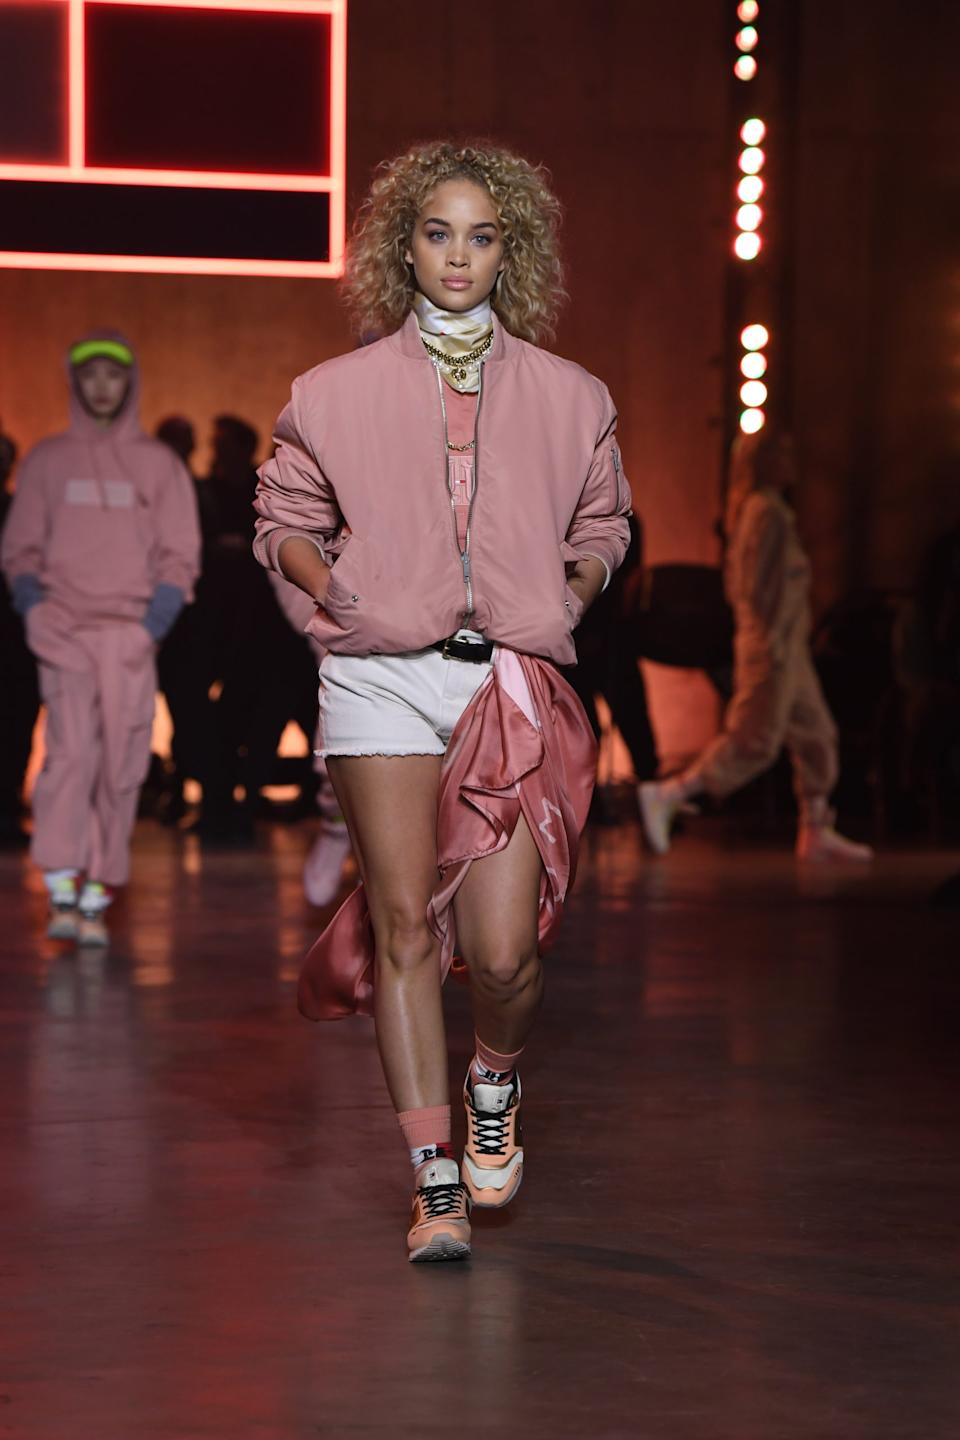 Jasmine Saunders walks the runway at the Tommy Hilfiger show during London Fashion Week. (Tommy Hilfiger)